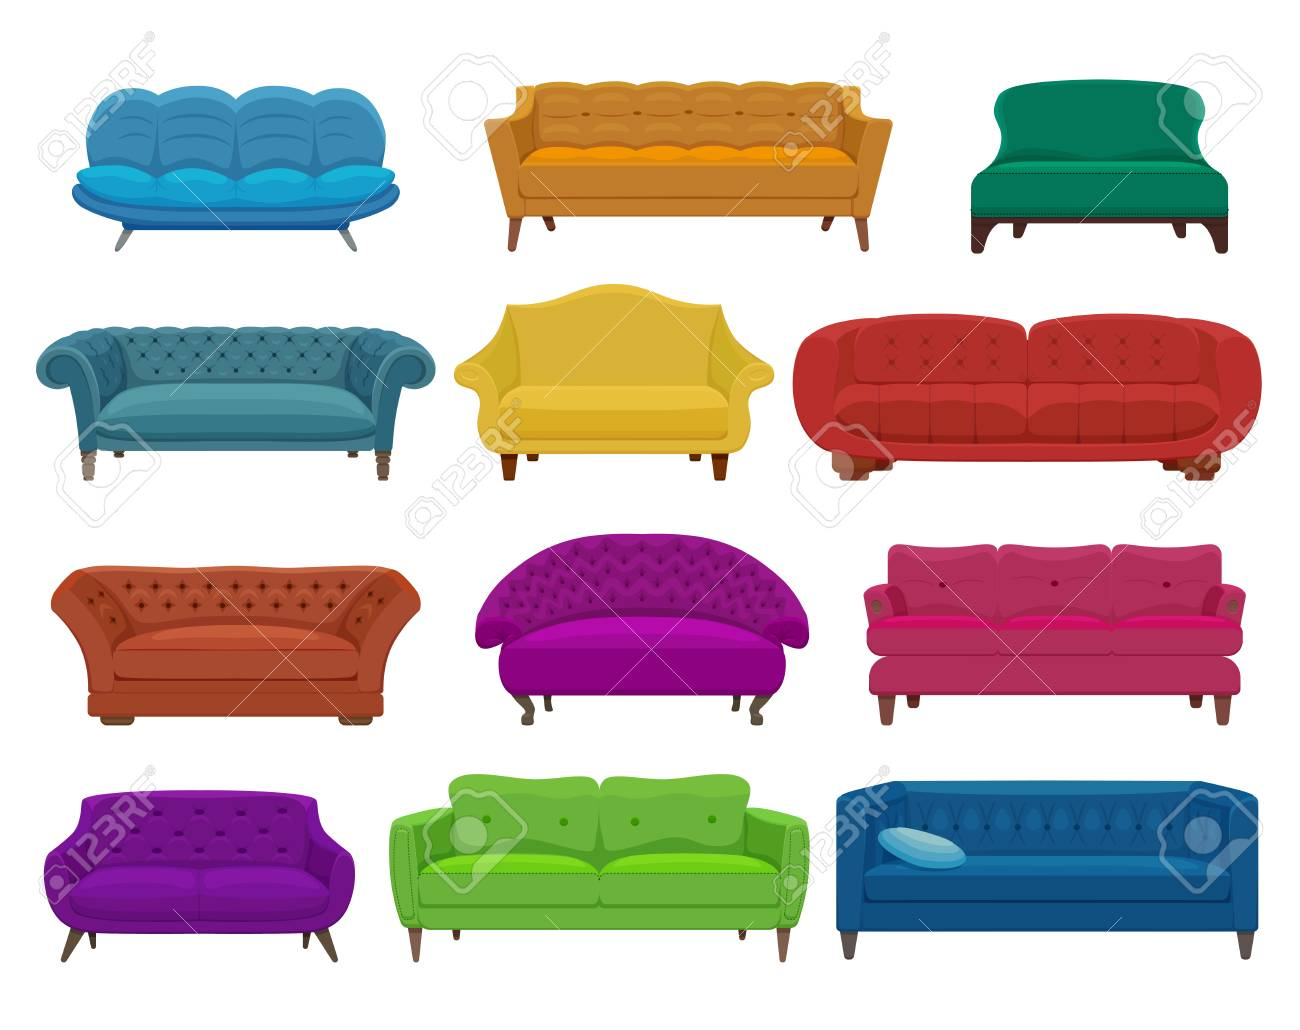 Sofa And Couches Colorful Cartoon Illustration Royalty Free Cliparts